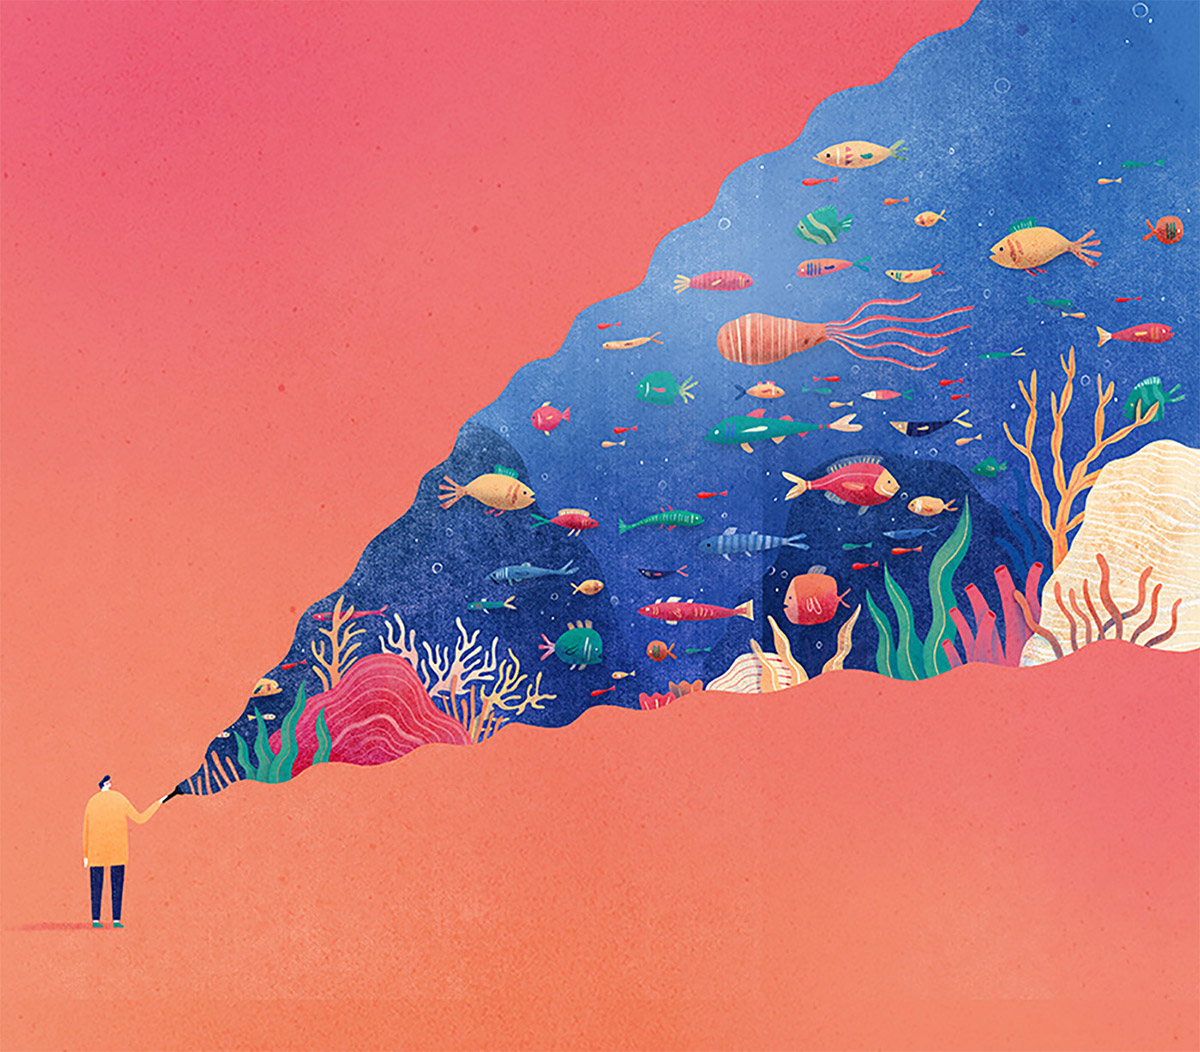 Whimsical Editorial Illustrations by Mark Conlan